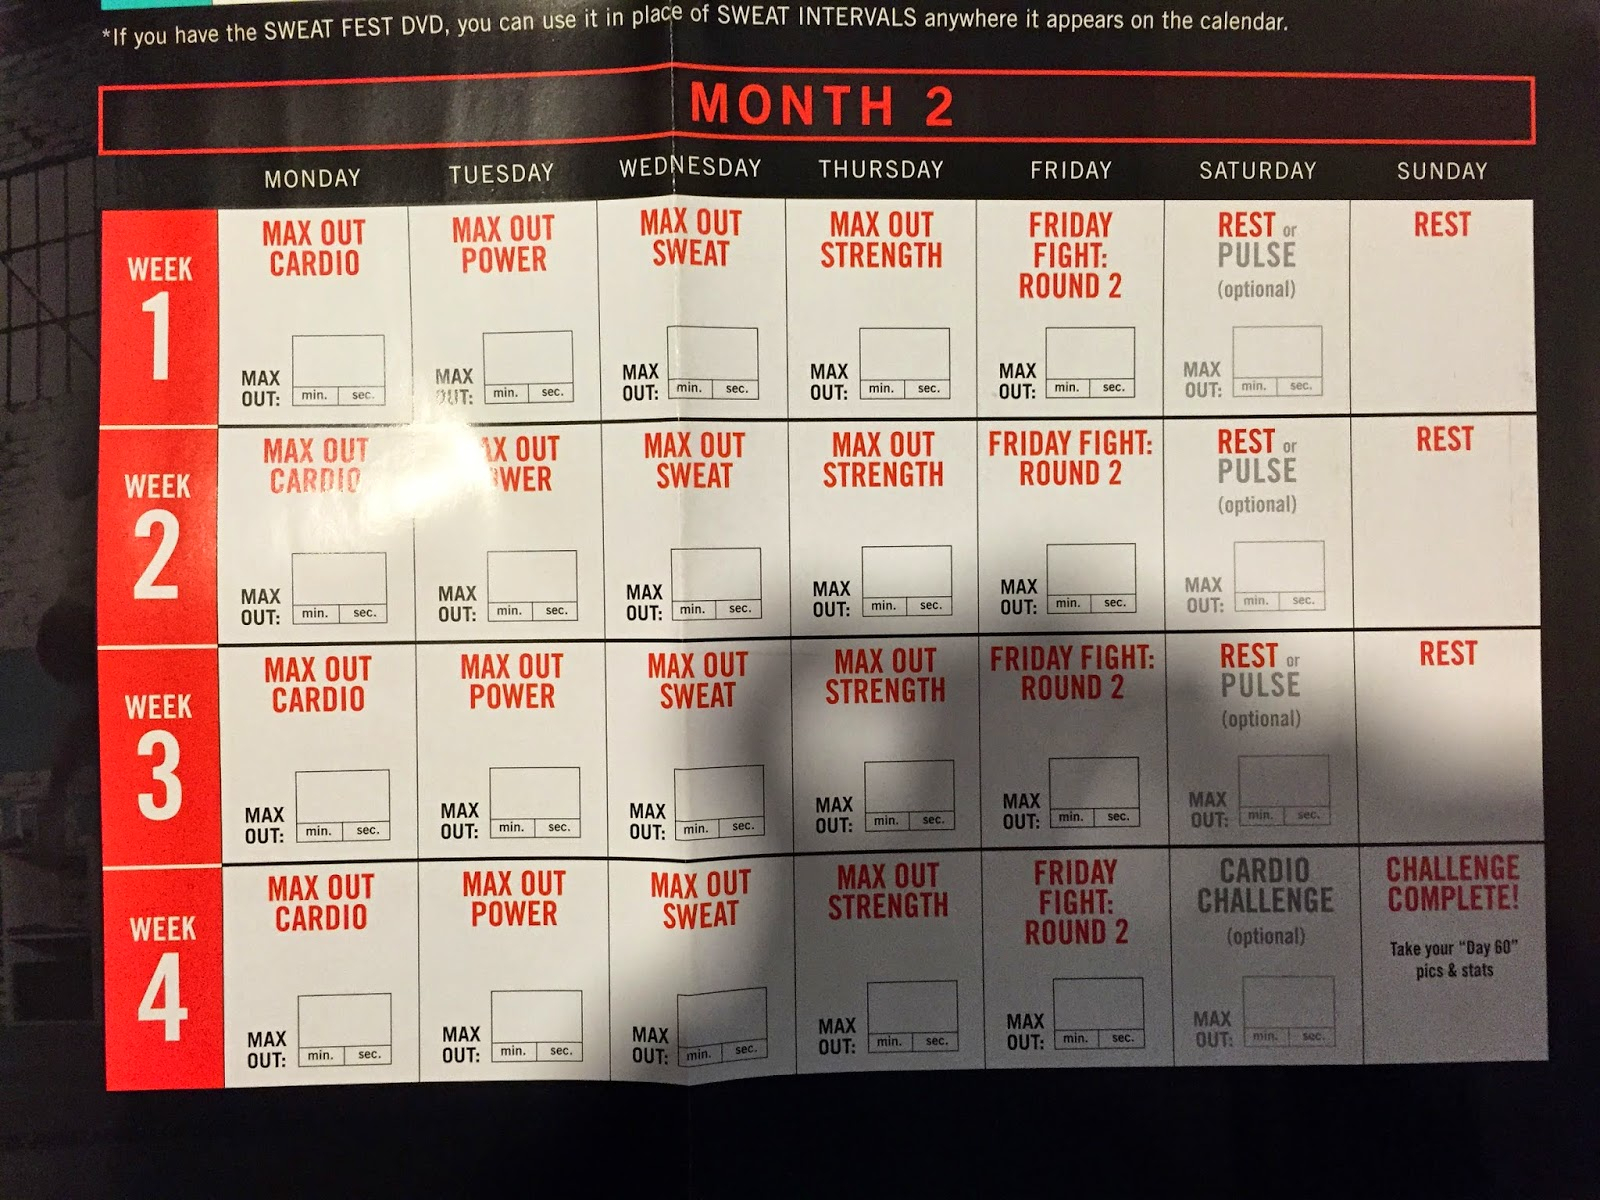 Fill Me With Meaning: December 2014 in Calendario Insanity Max 30